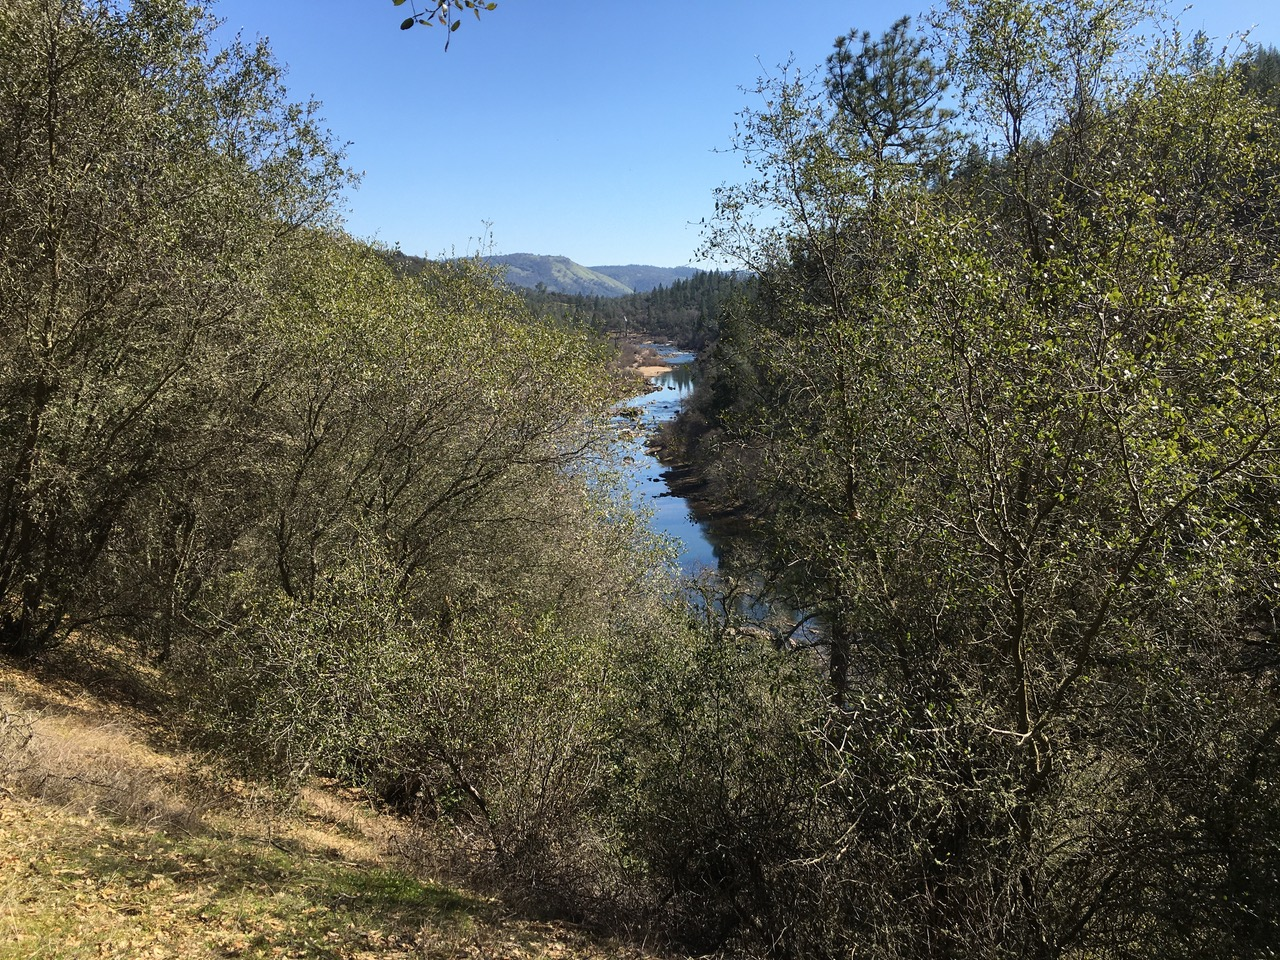 view of a River at Greenwood Creek Trail